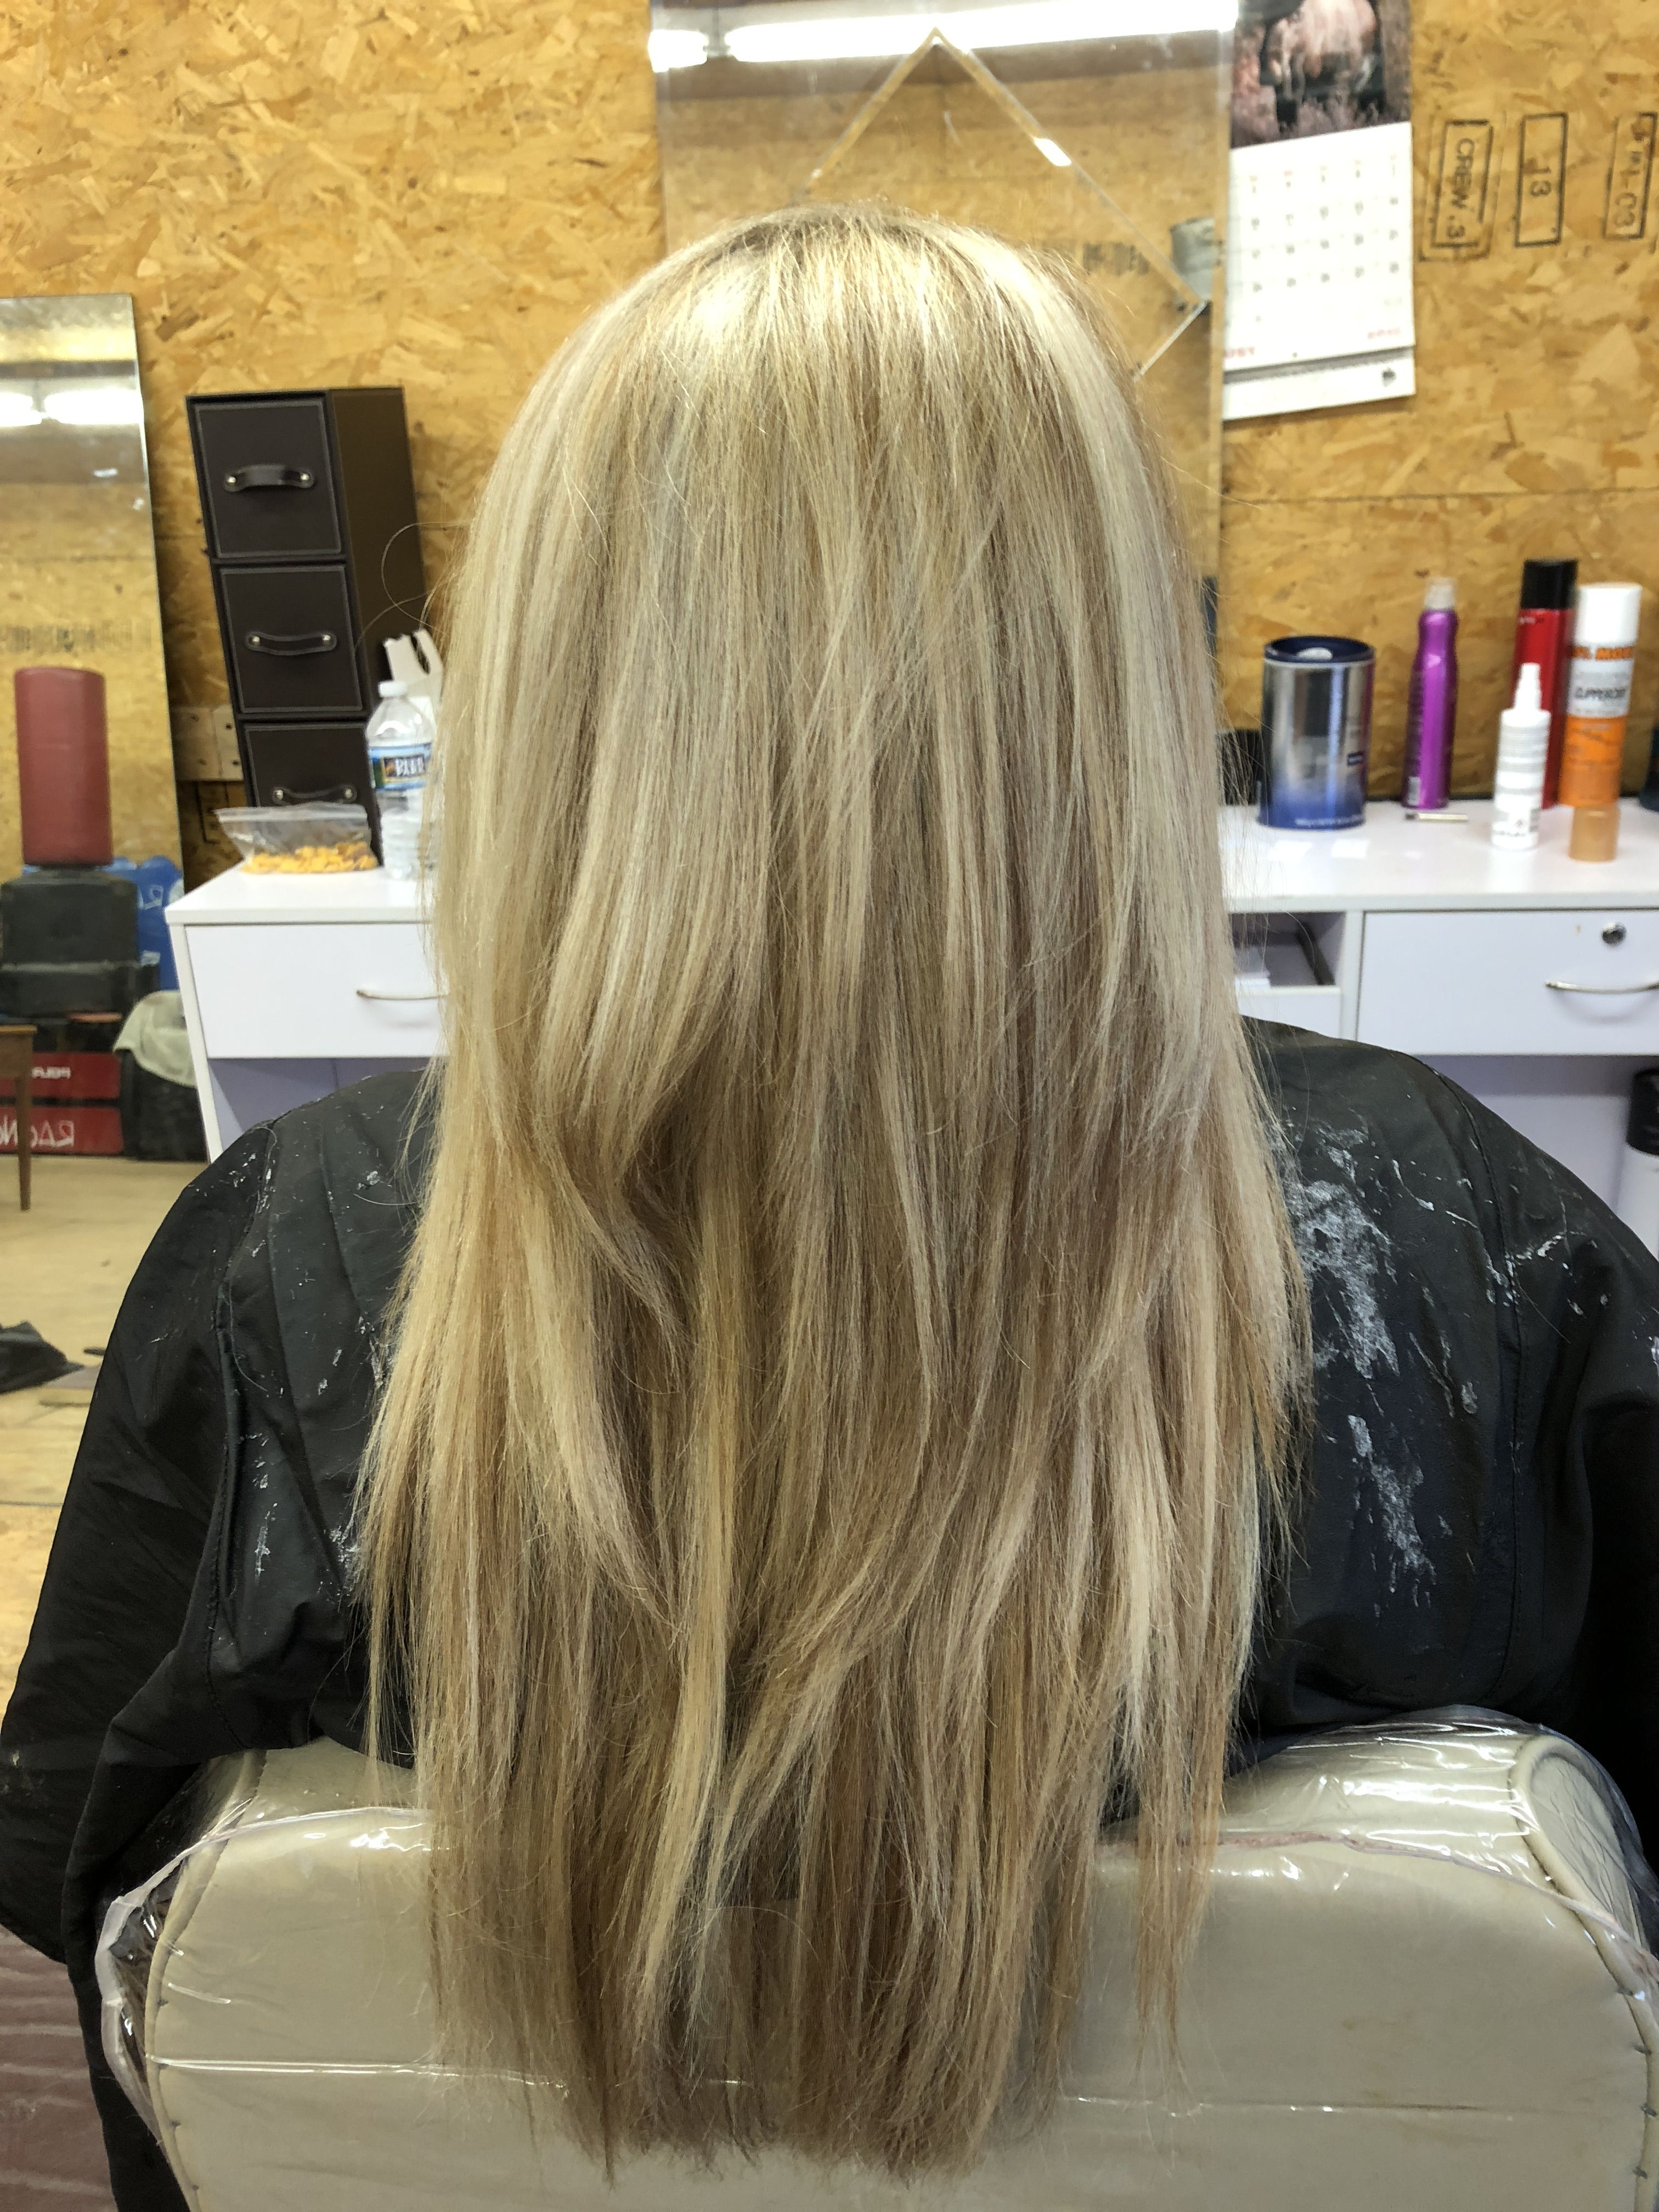 Spring Summer Ready Blonde Done By Michala Holland At Brick House Hair Salon Long Hair Styles Hair Beauty Highlights And Lowlights